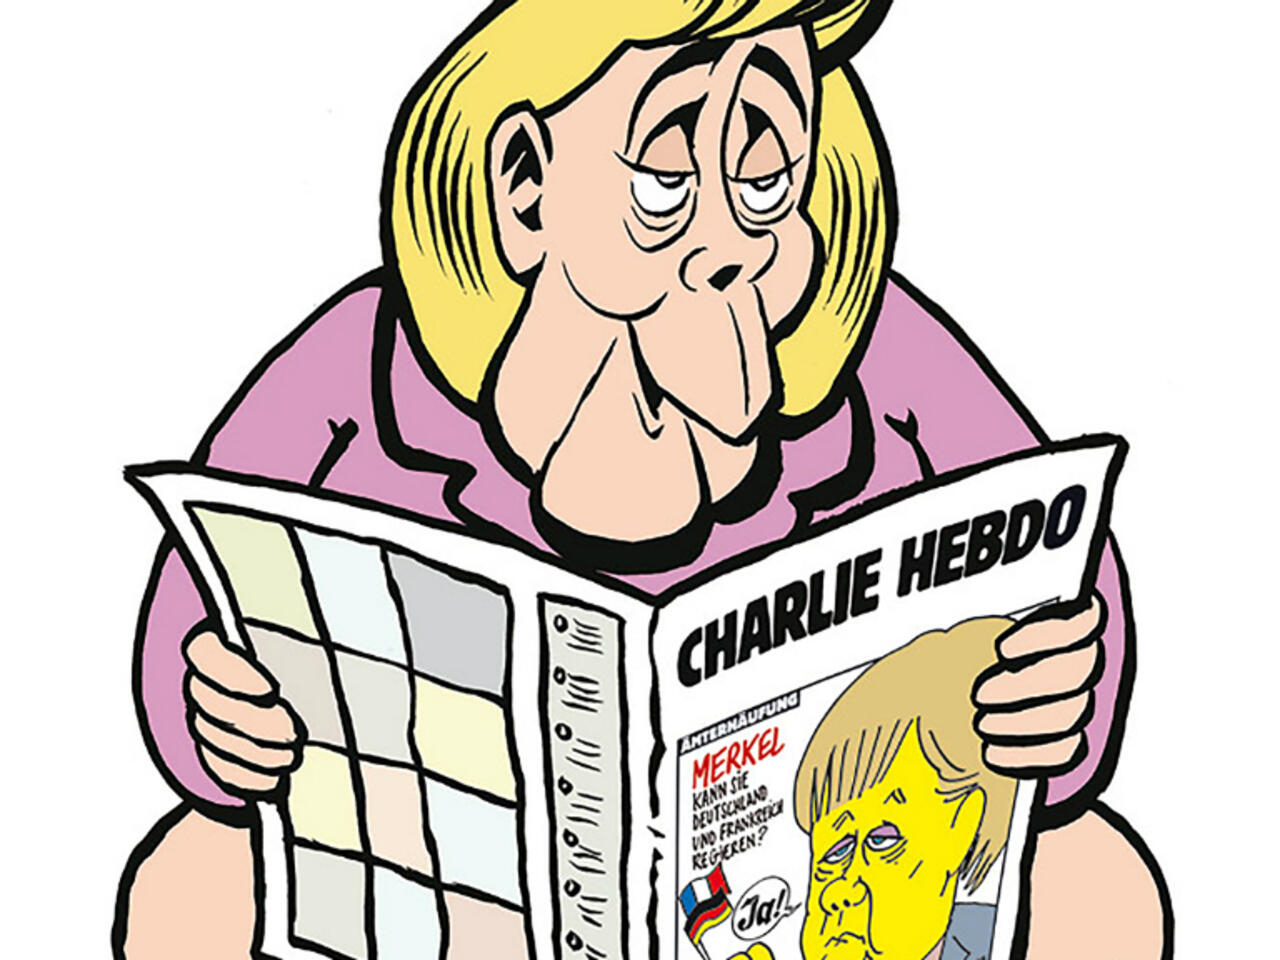 Charlie Hebdo S First German Front Edition Merkel On The Toilet